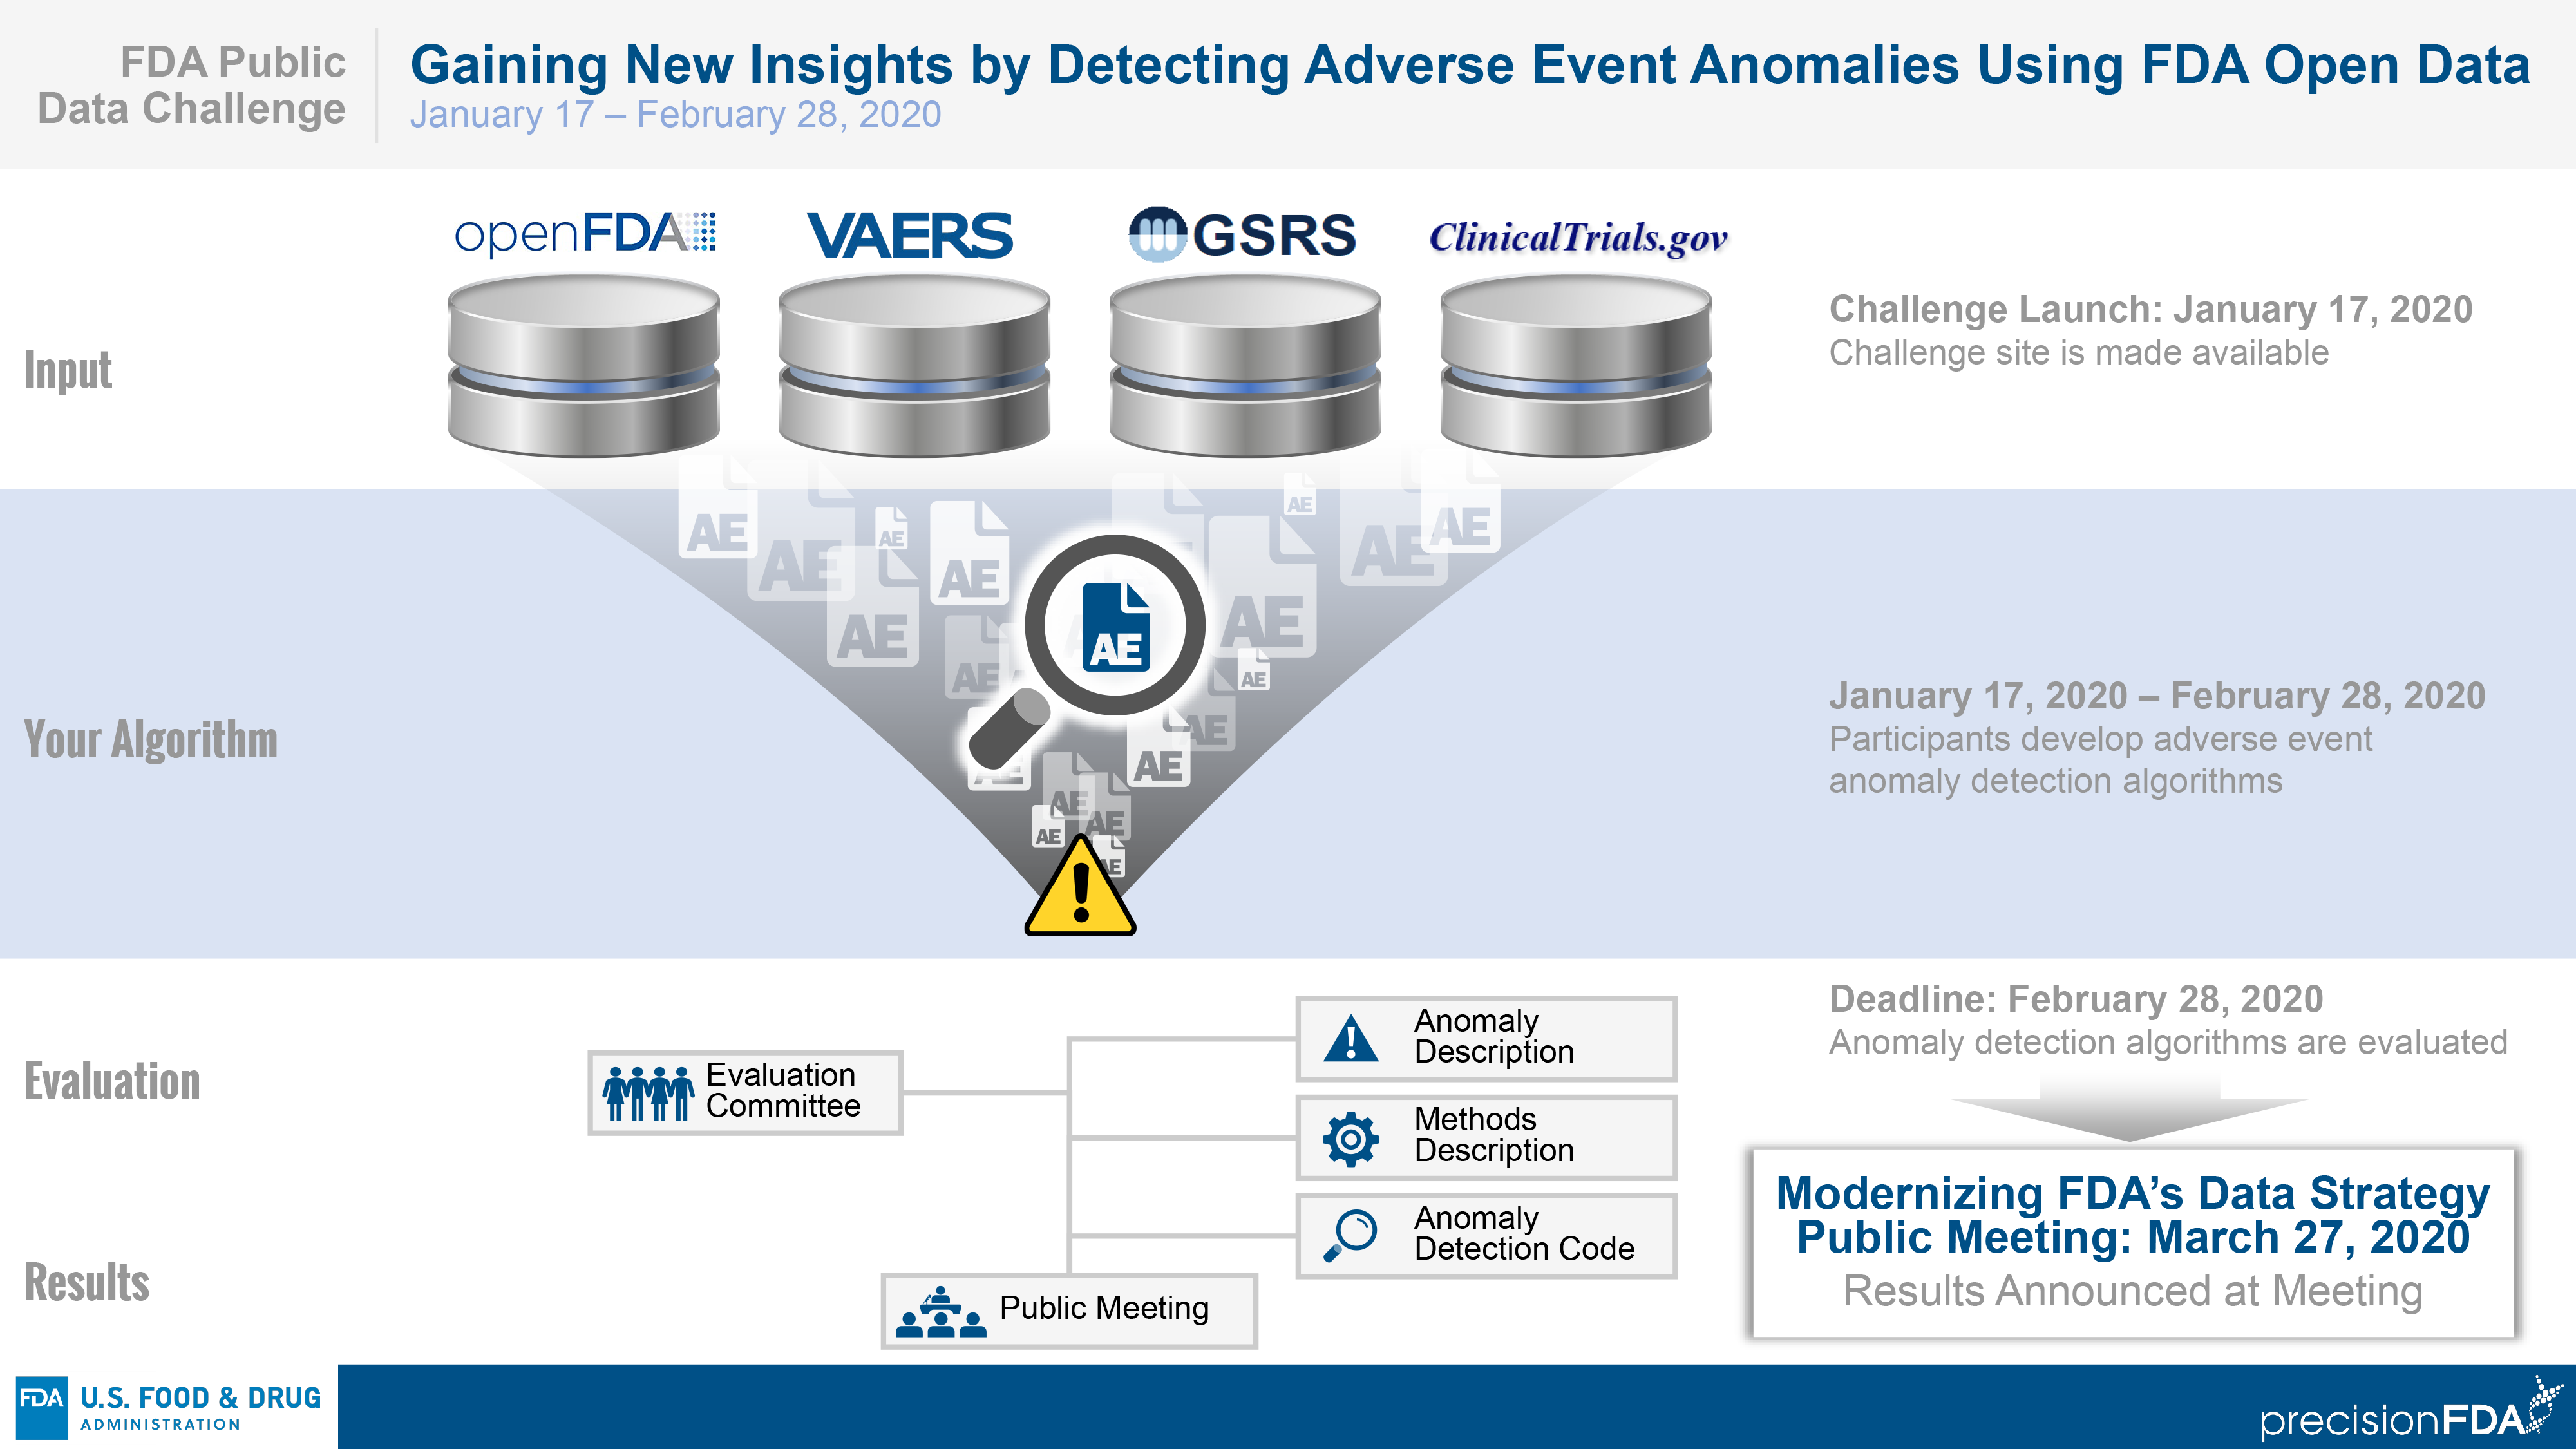 Gaining New Insights by Detecting Adverse Event Anomalies Using FDA Open Data